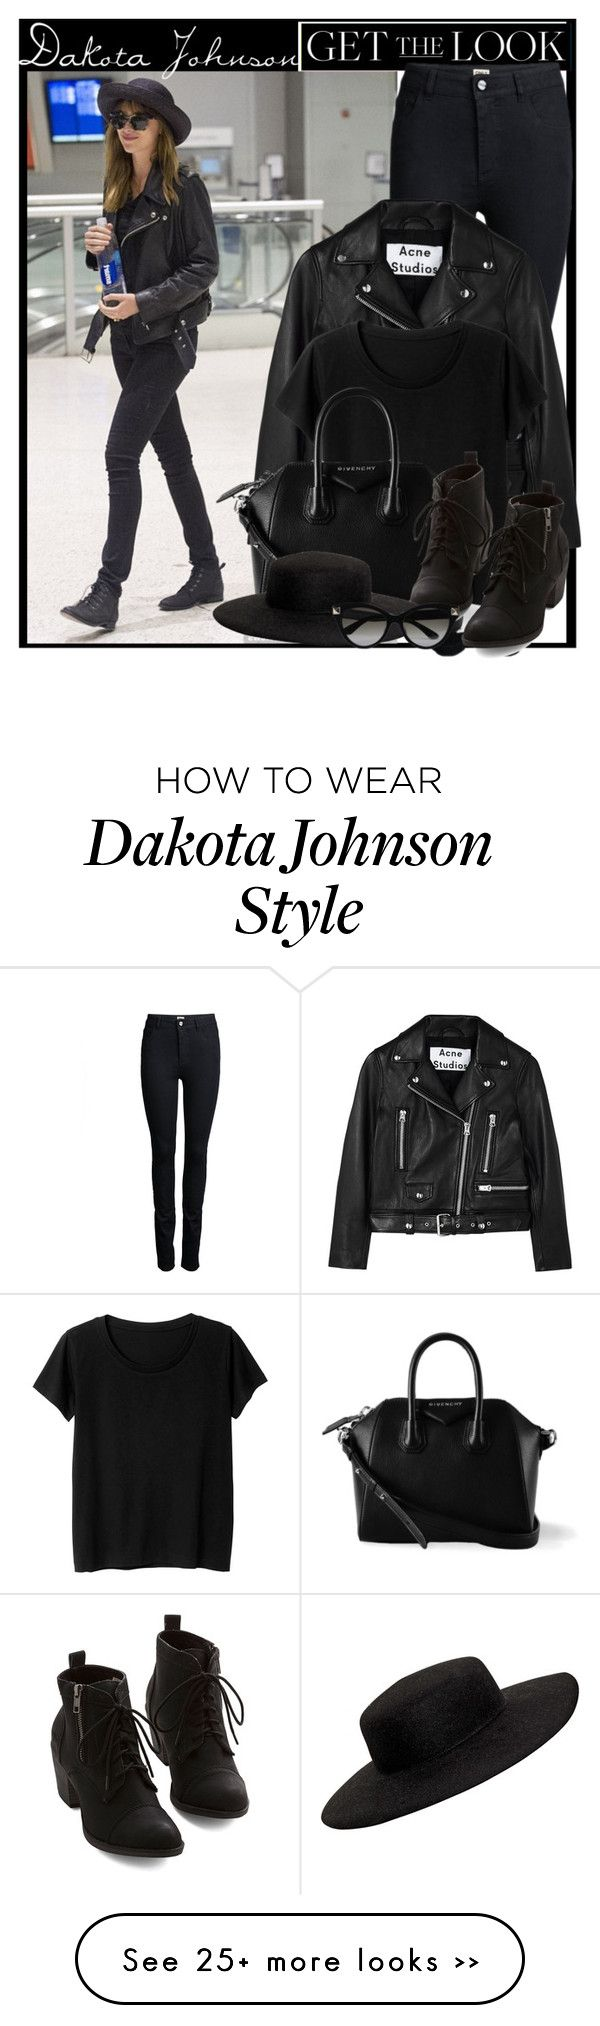 """Get The Look - 50 Shades of Grey co-star - Dakota Johnson"" by anne-mclayne on Polyvore"